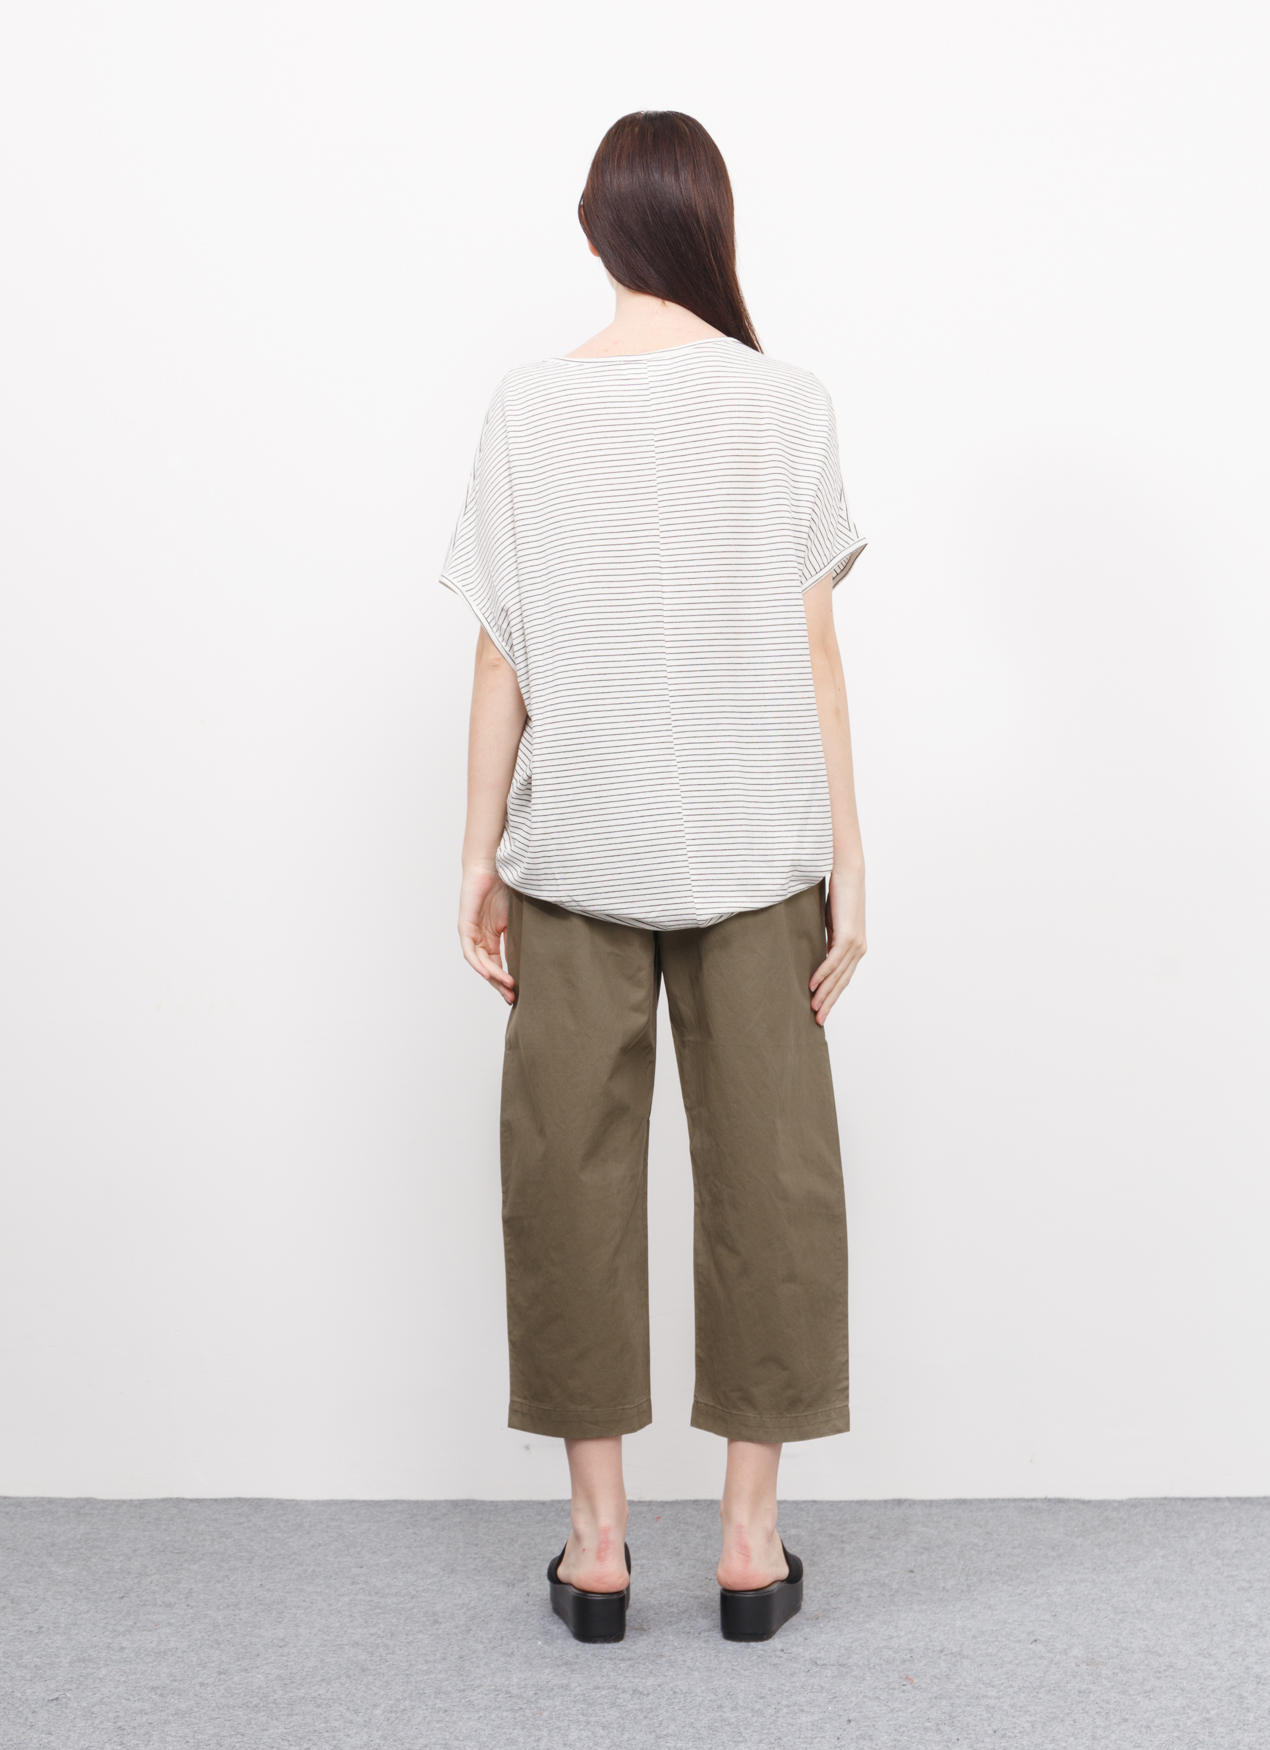 BOWN Lyrra Top - Off White